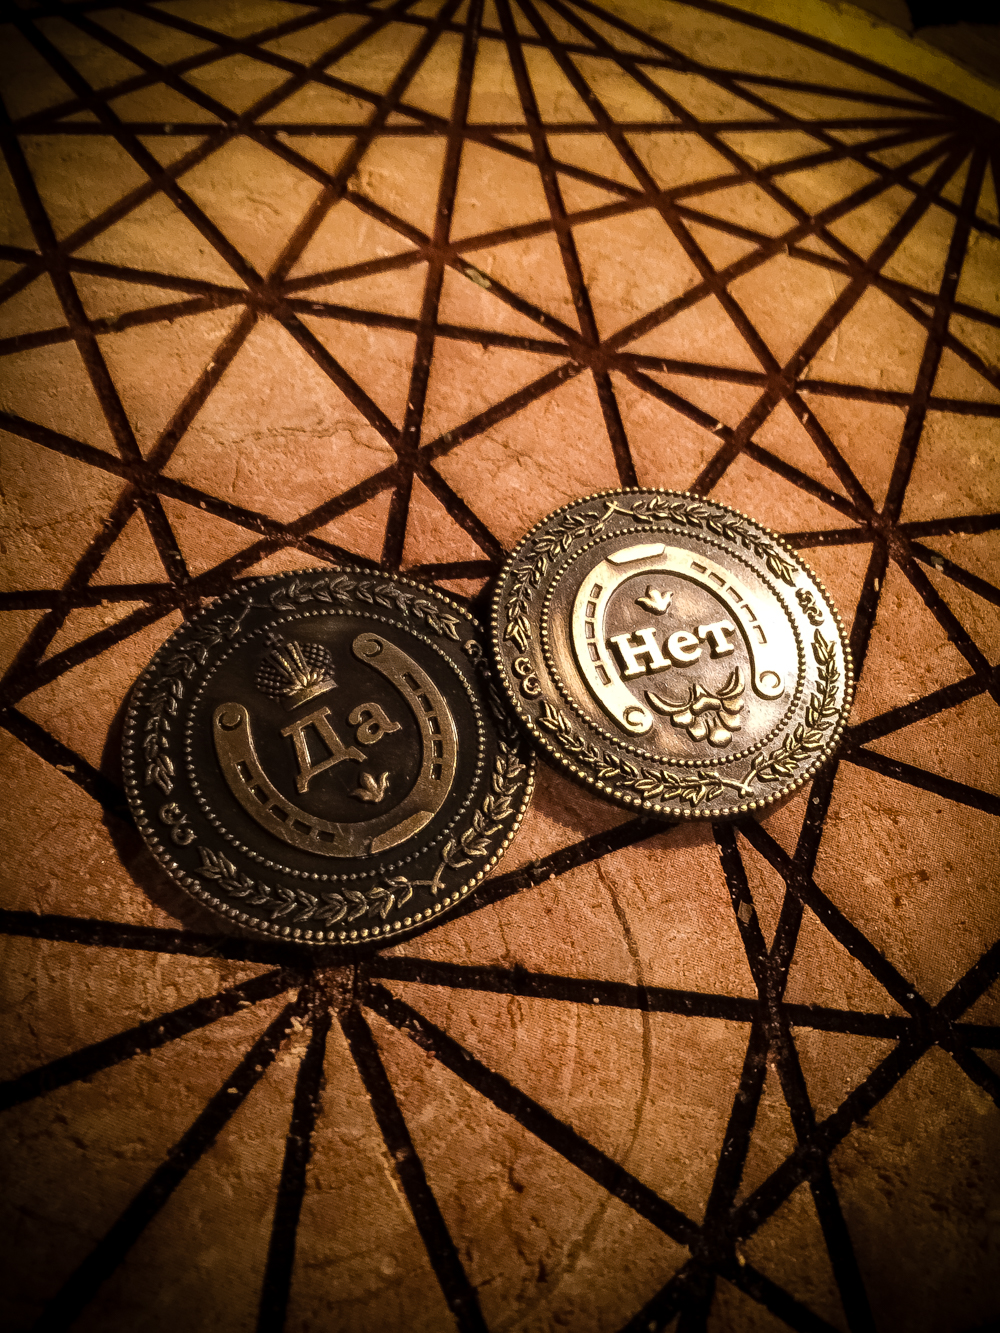 Slavic Fortune Telling Coin